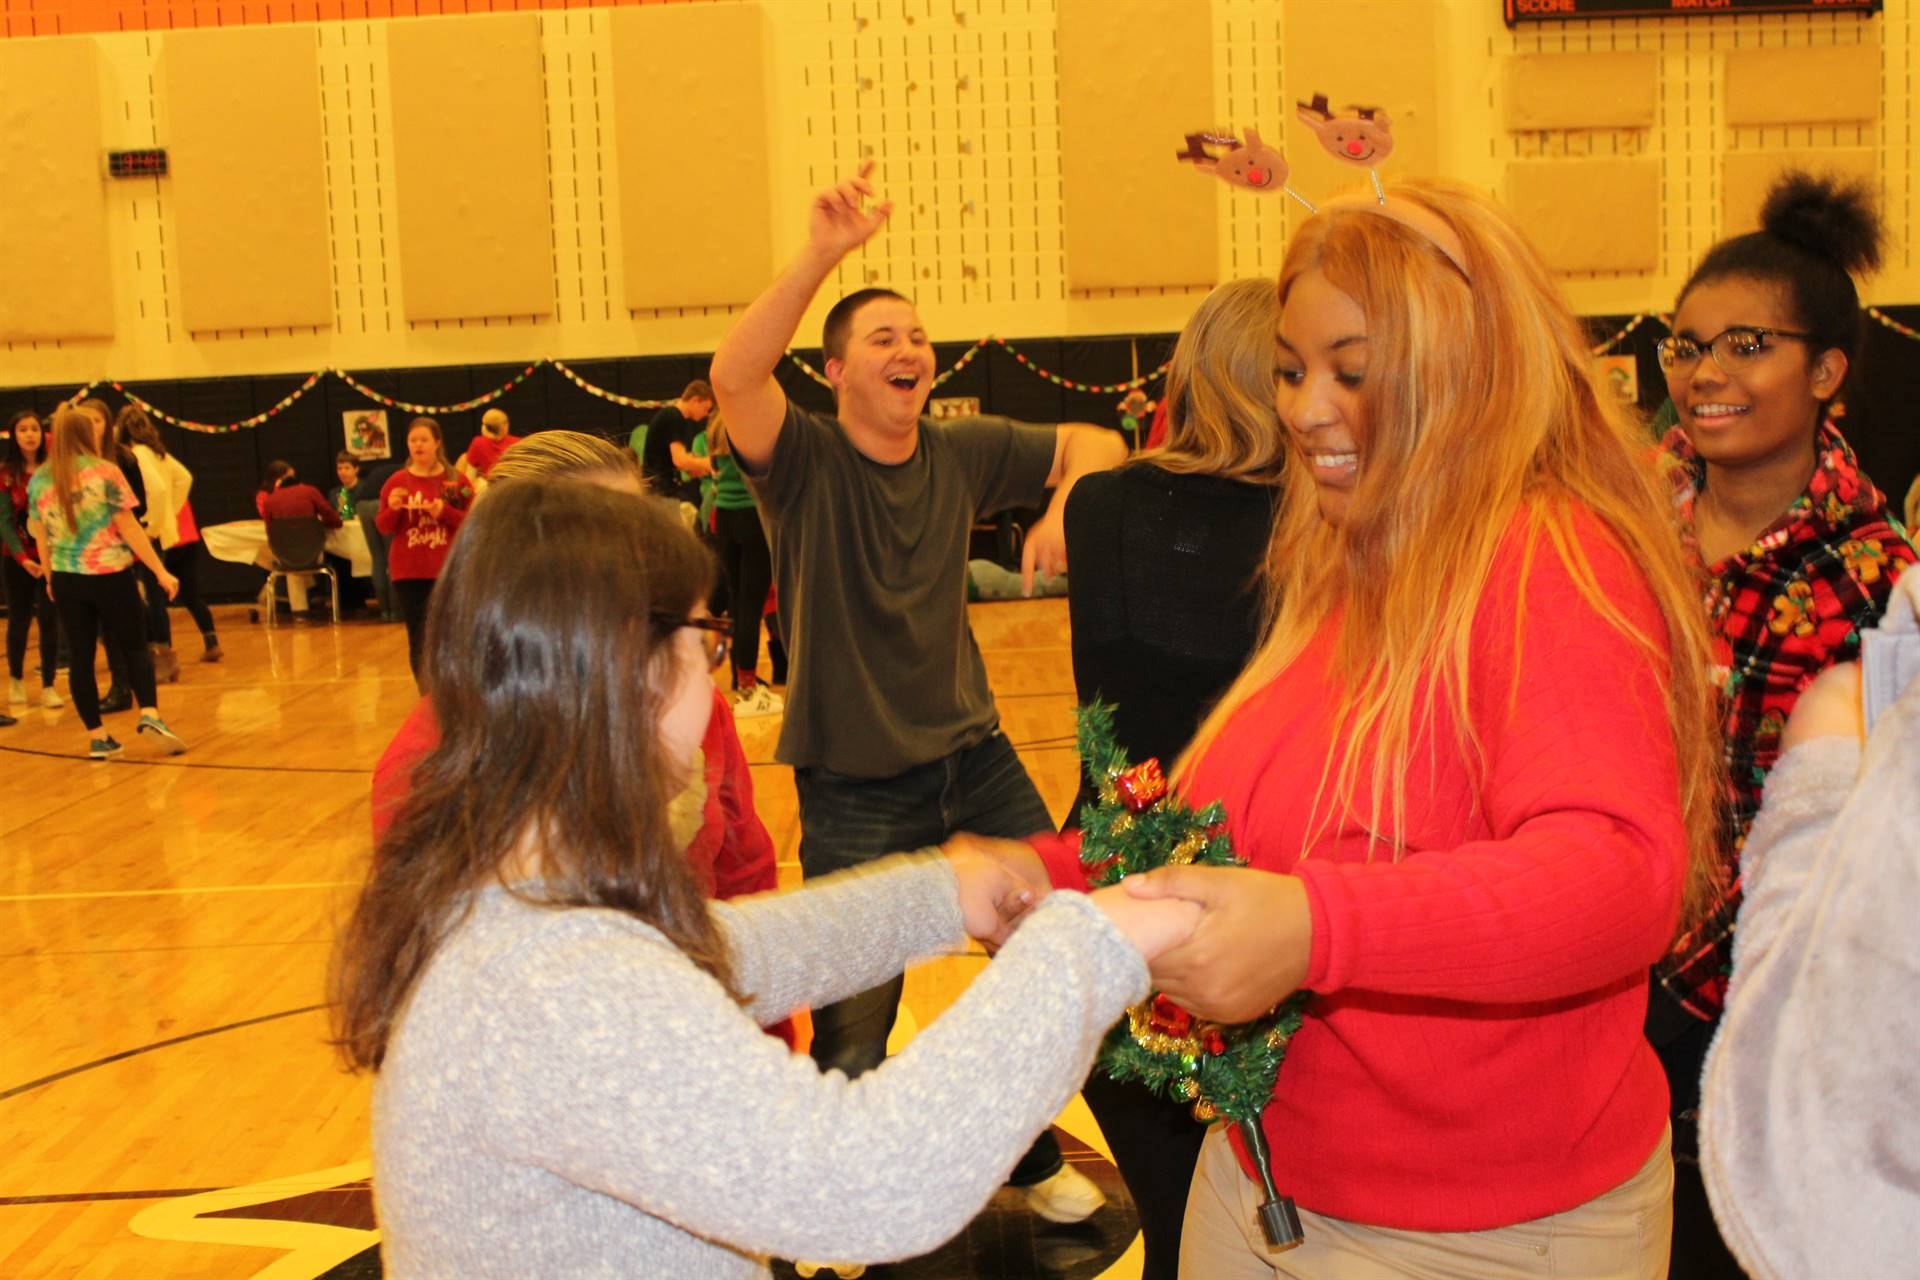 Dancing at the Holiday Sweater Dance